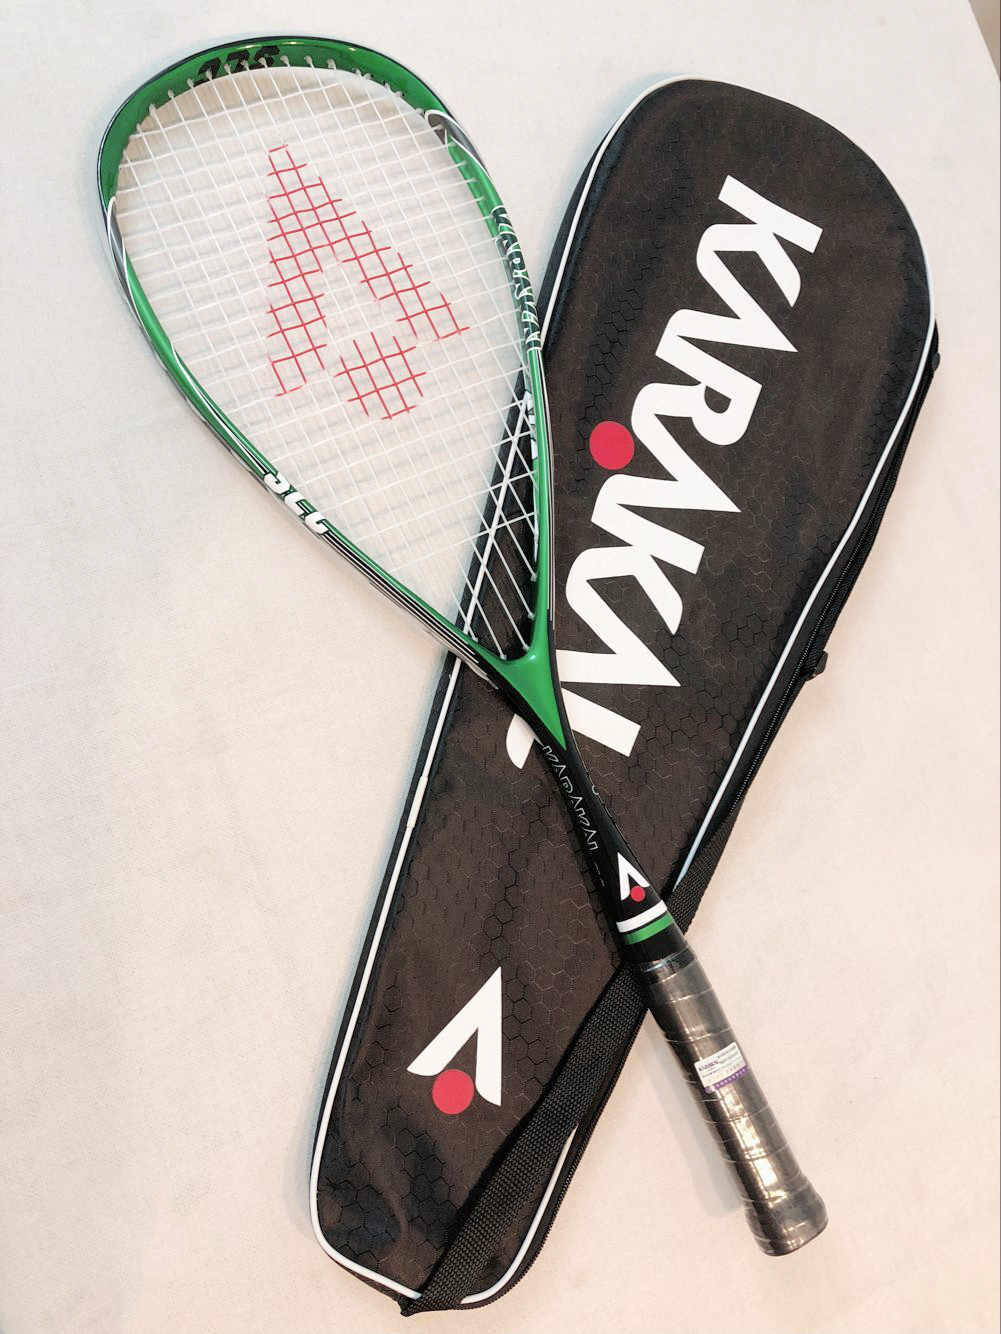 Original Karakal Squash Racket 130g SLC Carbon Fiber Material For Squash Sport Training Match game for Players Learners raquete